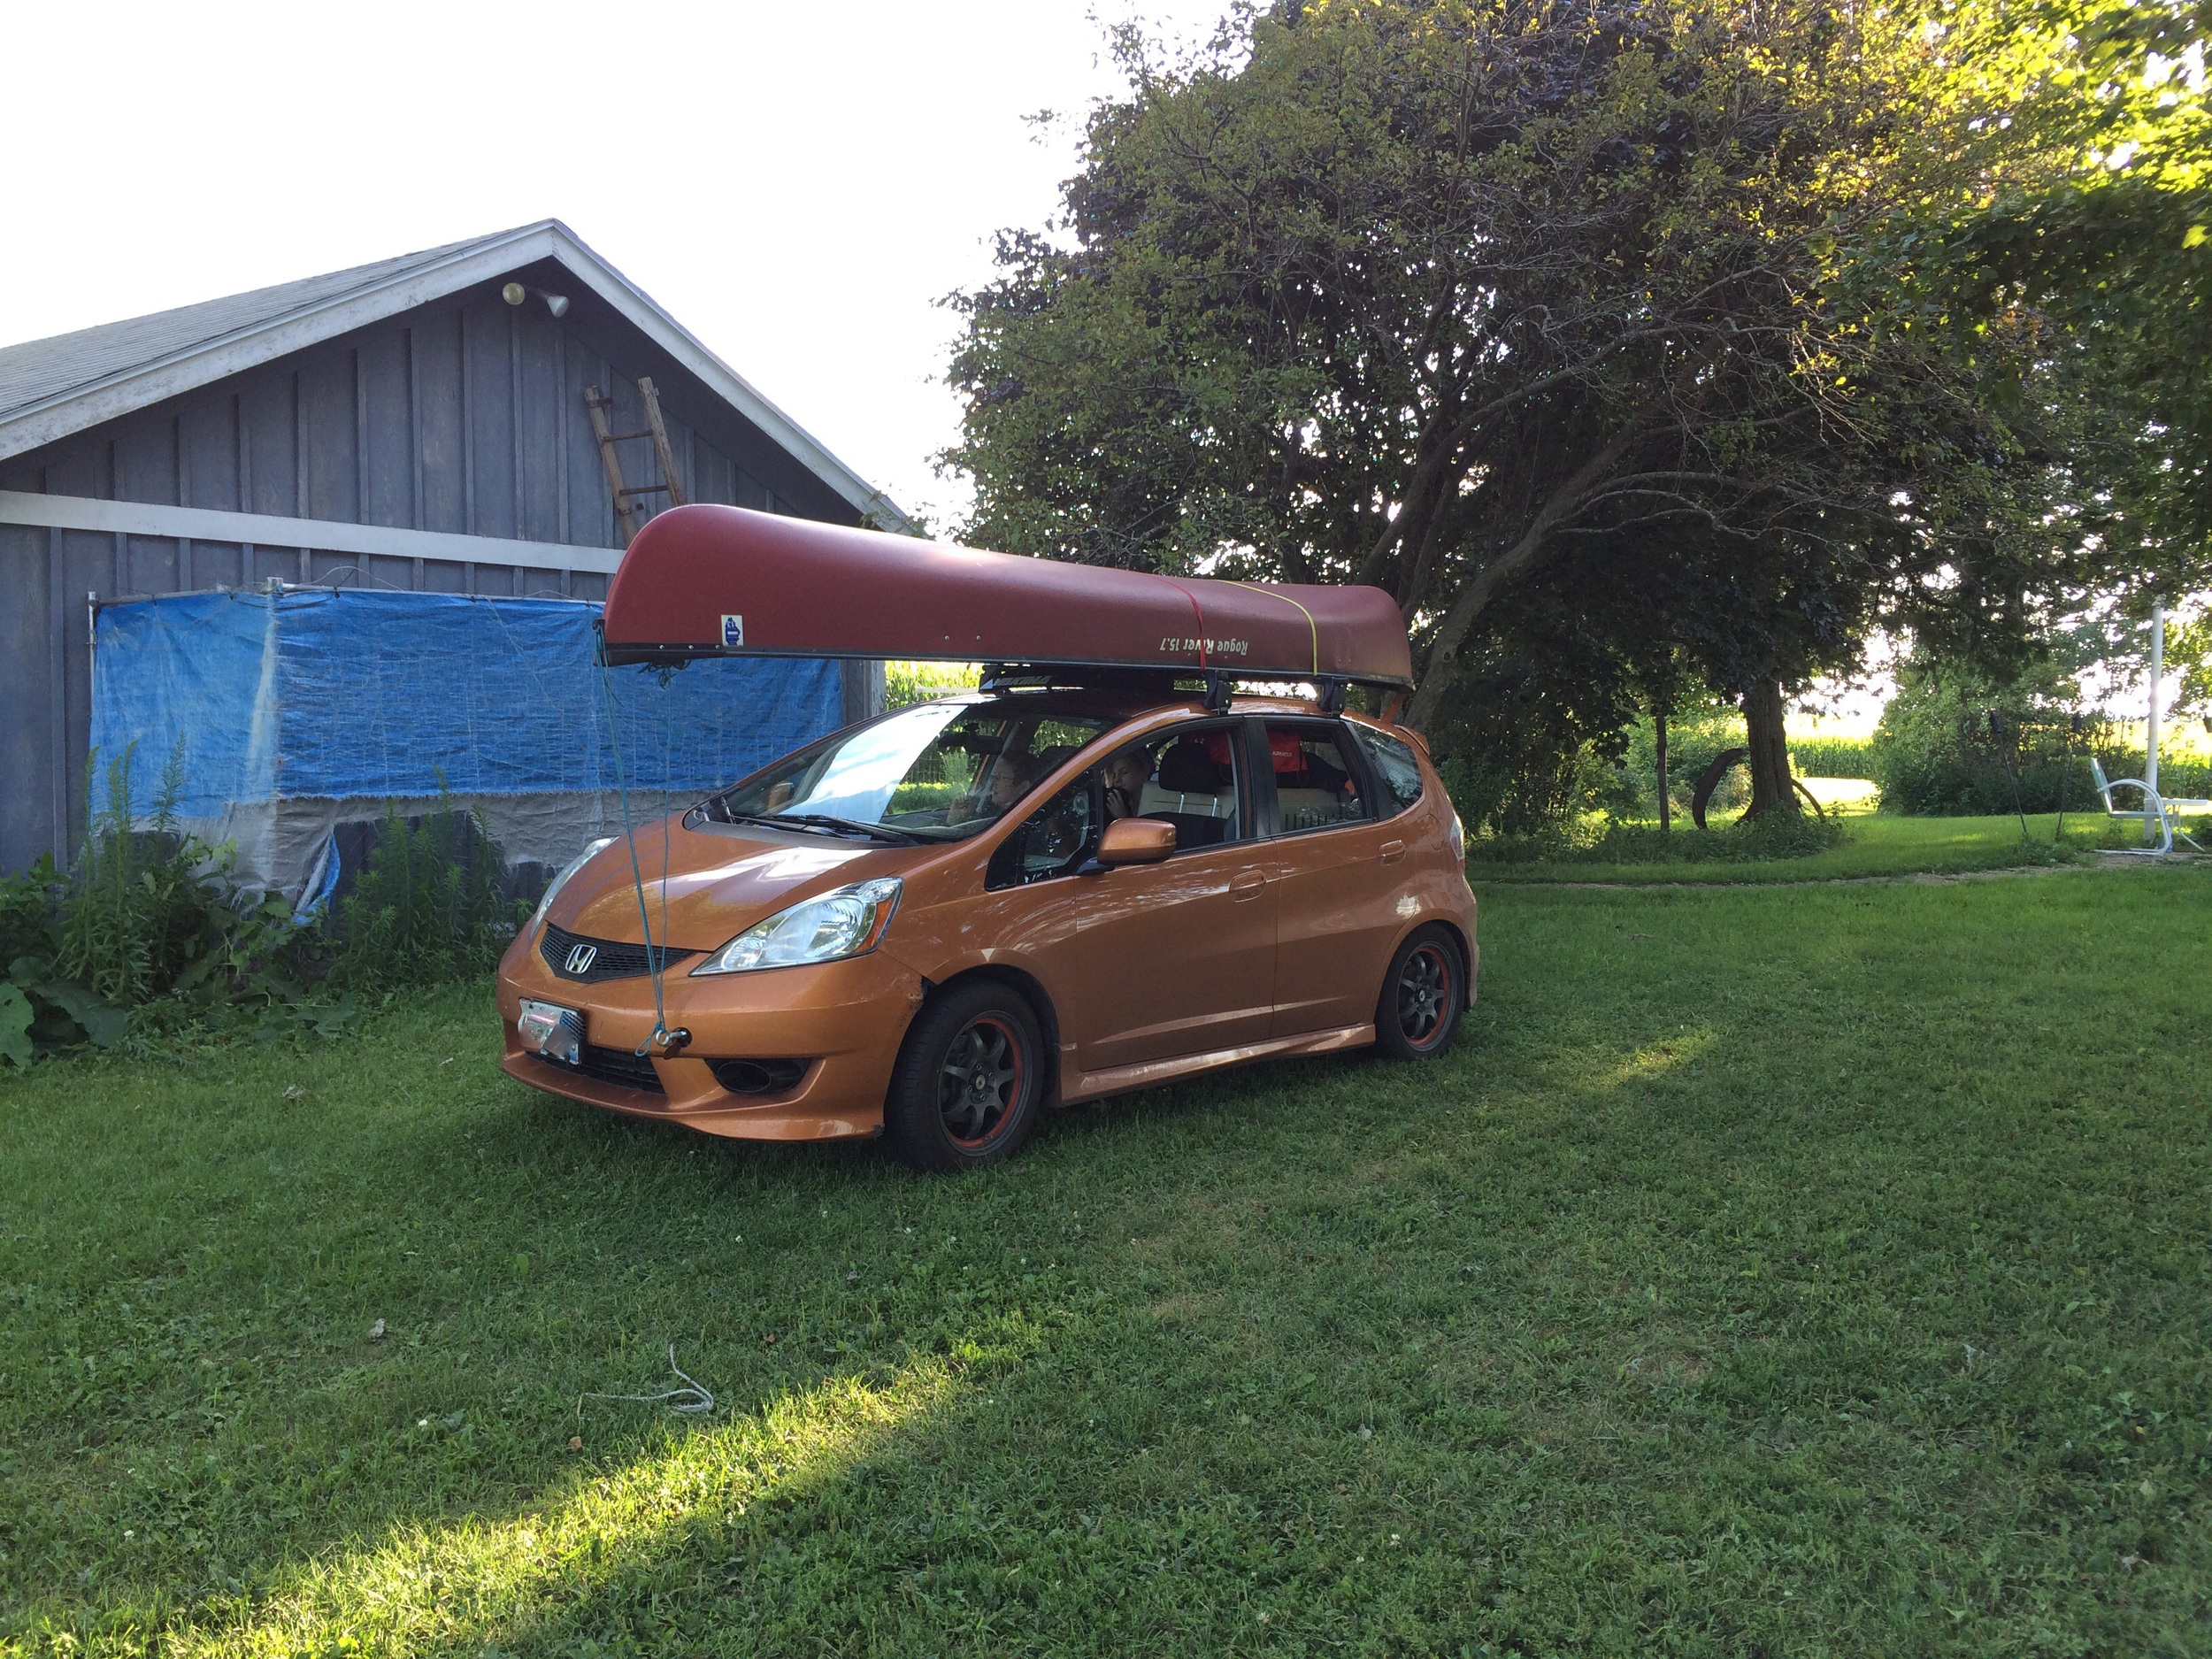 The canoe doesn't overwhelm the car at *all*. No sir, not at all.